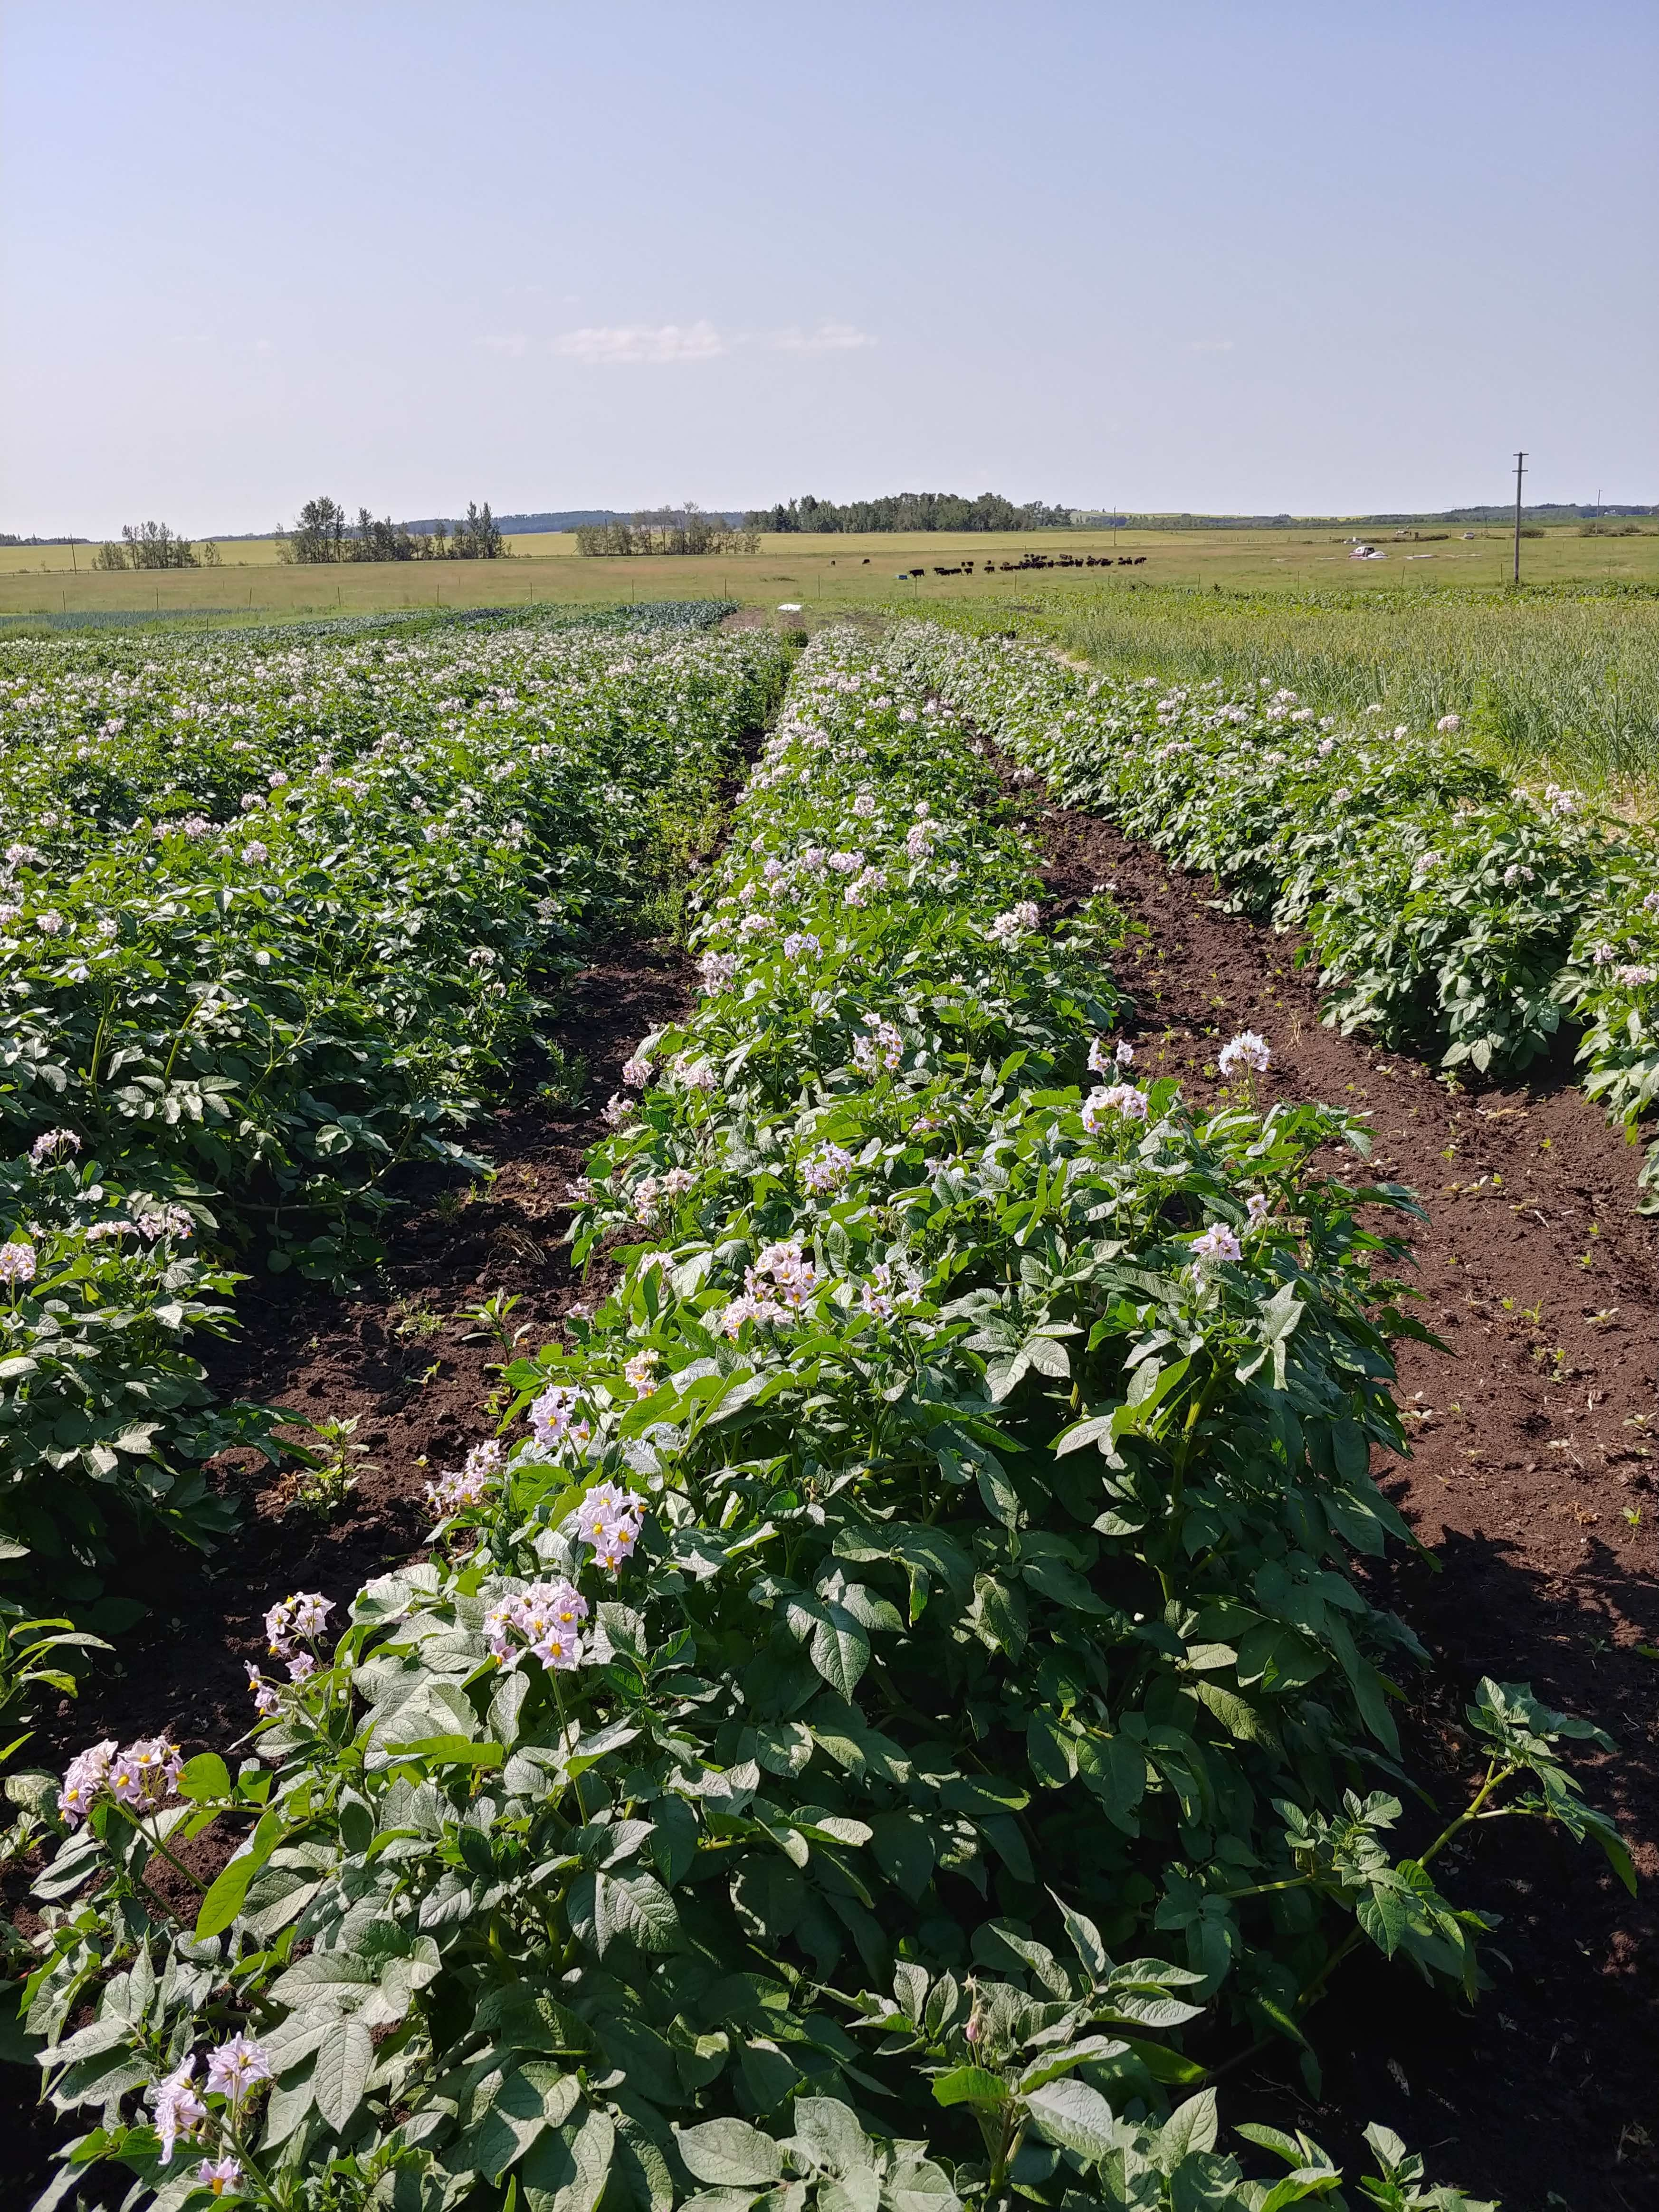 Previous Happening: August 5th - Farm Happenings - Potatoes and Beef